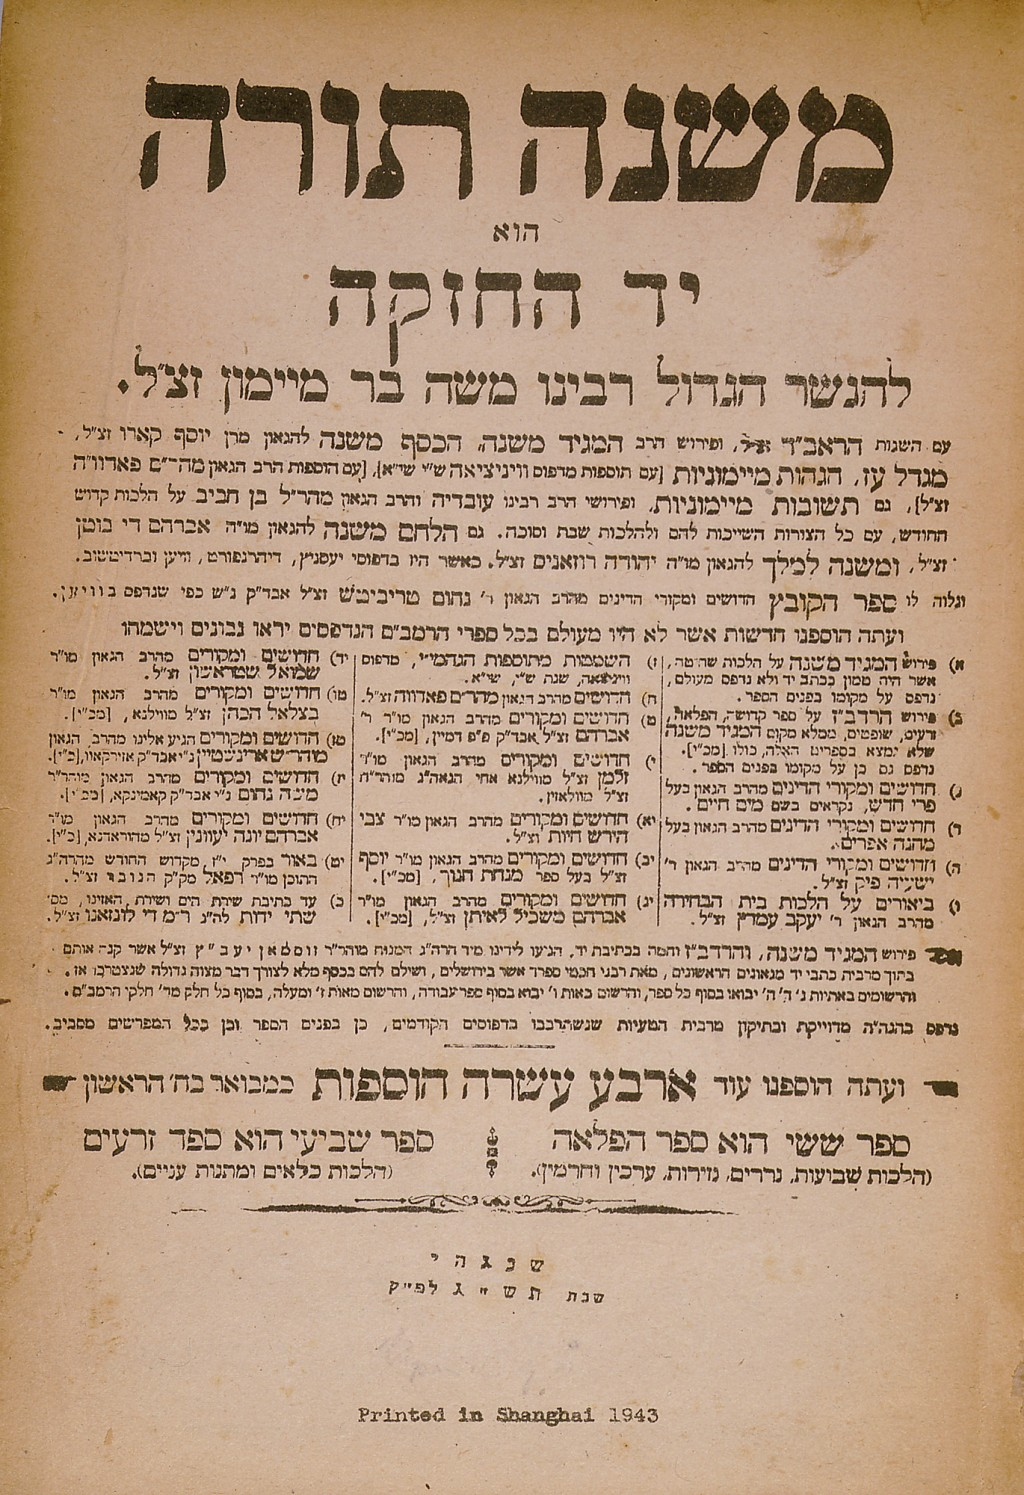 <p>A page from the Mishneh Torah, one of many texts reprinted in Shanghai during the war. Yeshiva students spent part of each day listening to teachers lecture on the Talmud, the collection of ancient Rabbinic writings and commentaries composed of the Mishnah and the Gemara that form the basis of religious authority in Judaism. During the rest of the day, students paired up to review selections from the lecture. [From the USHMM special exhibition Flight and Rescue.]</p>